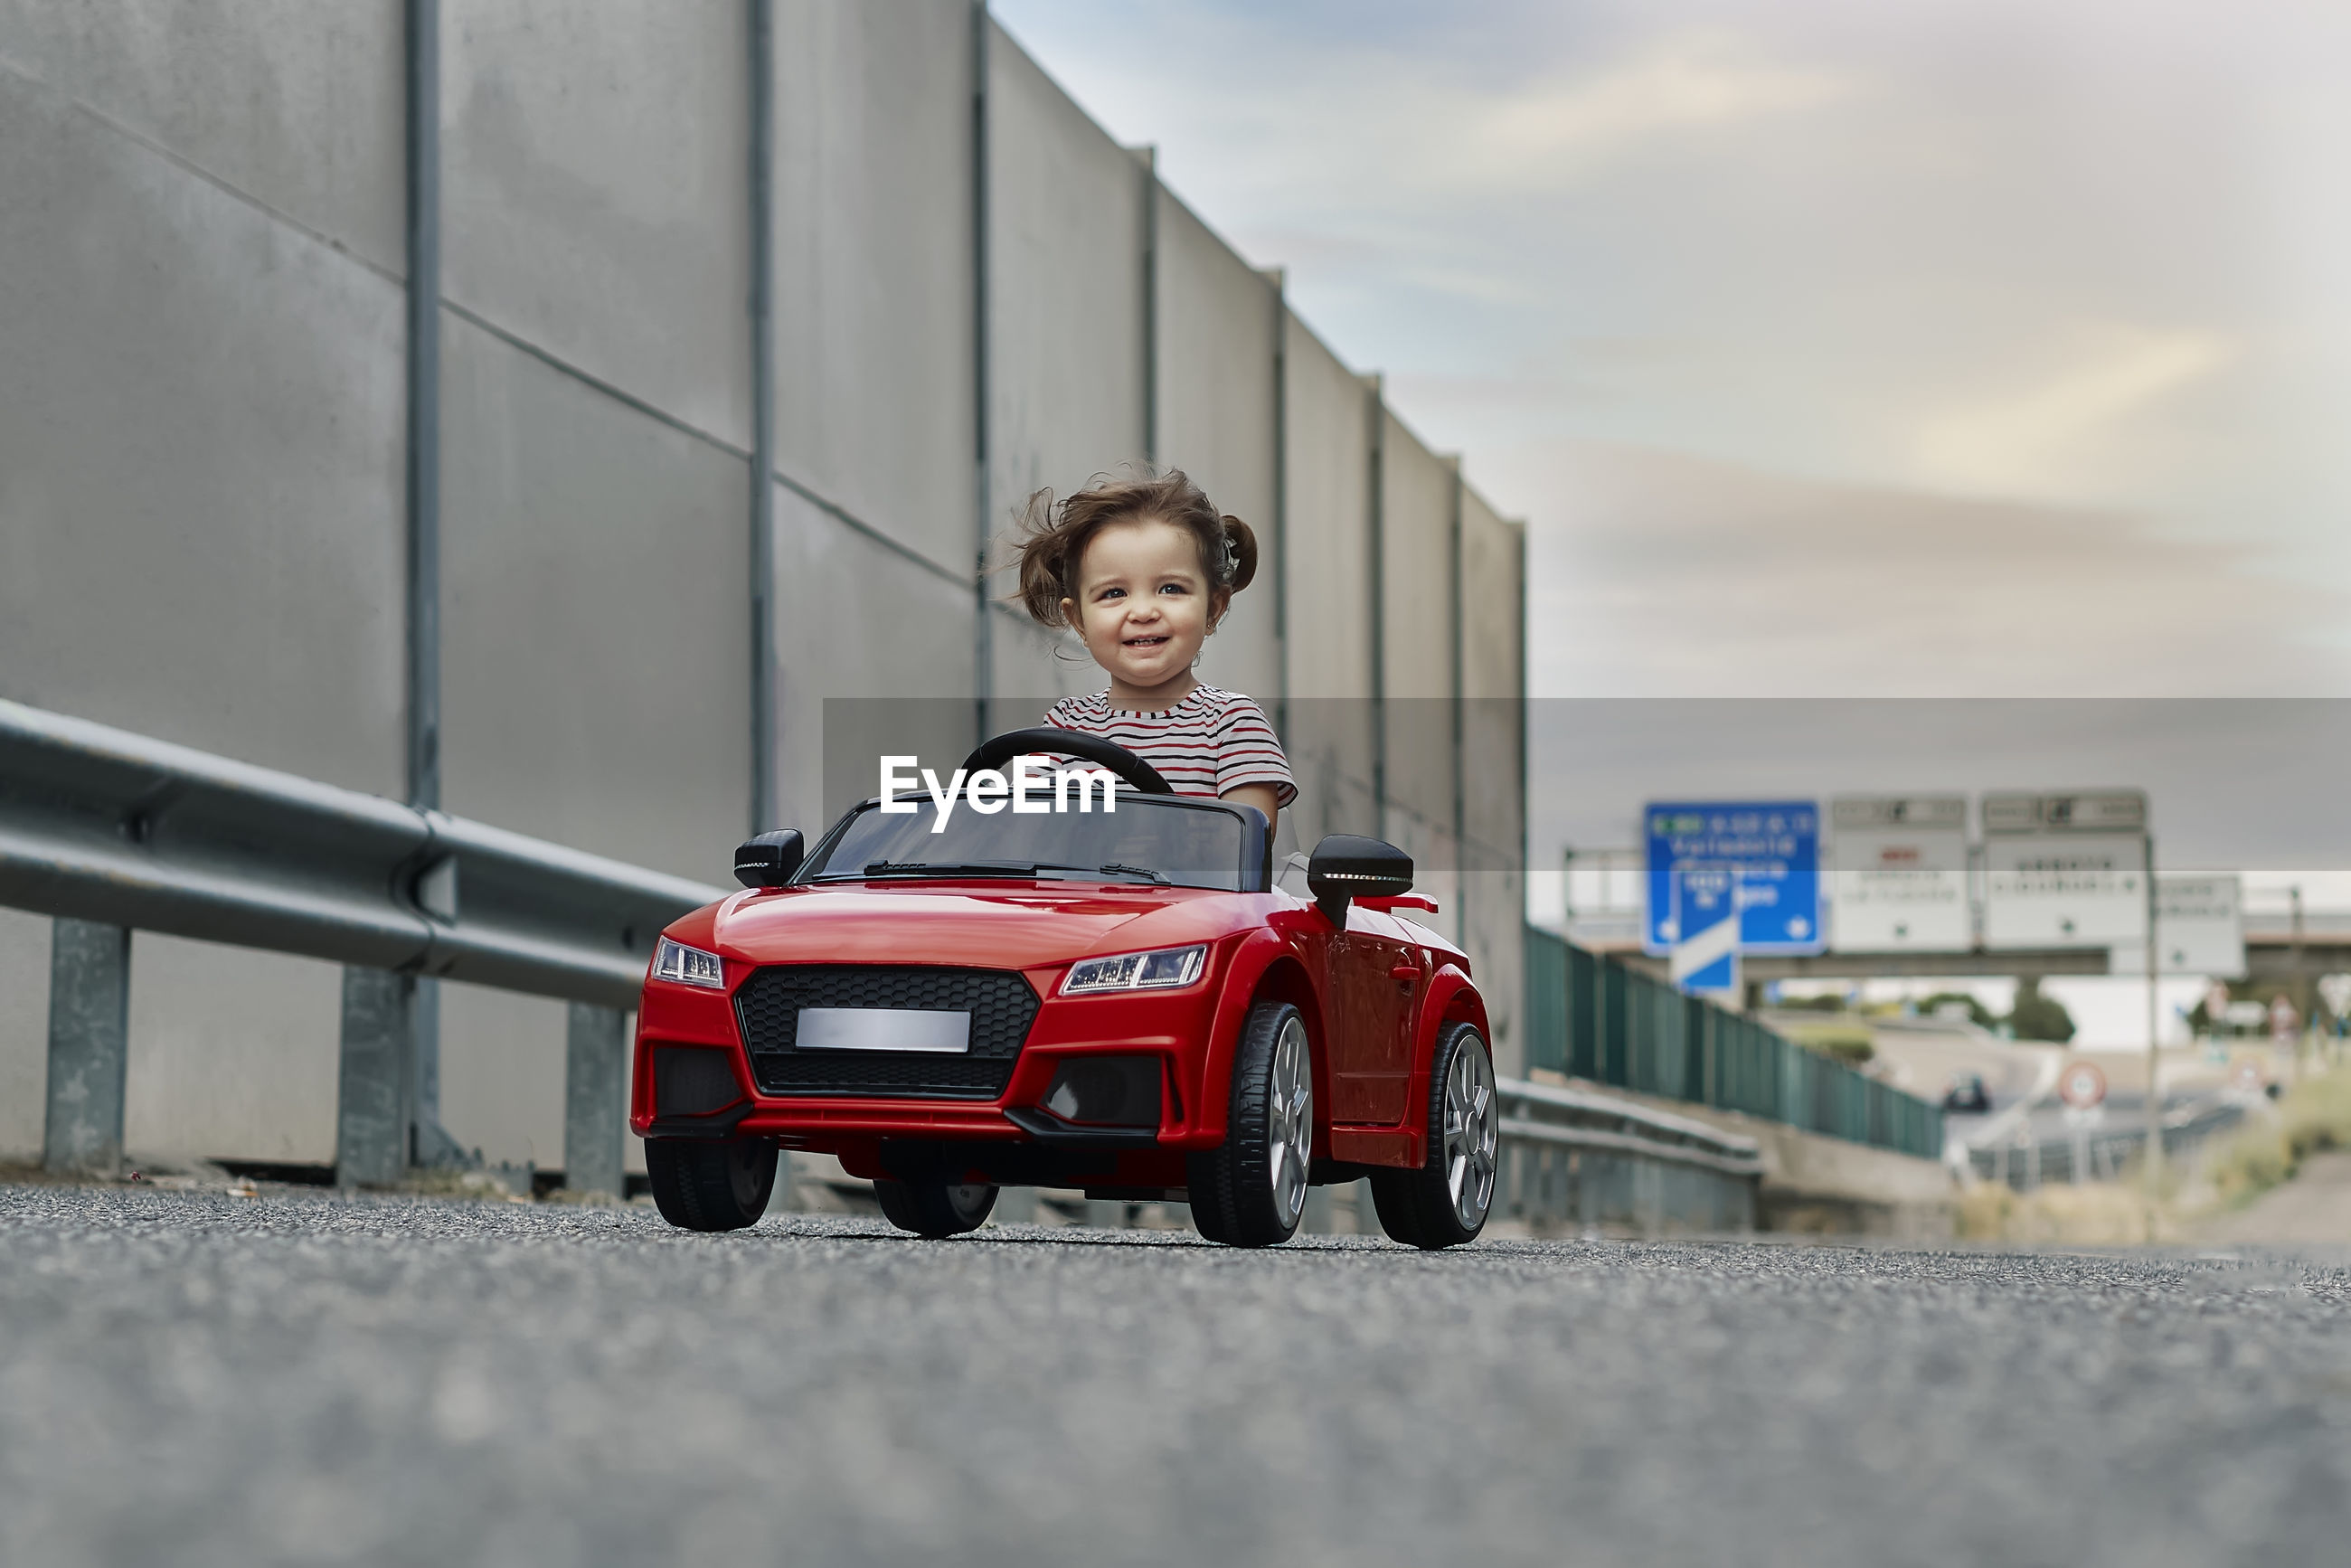 PORTRAIT OF BOY WEARING SUNGLASSES AT CAR